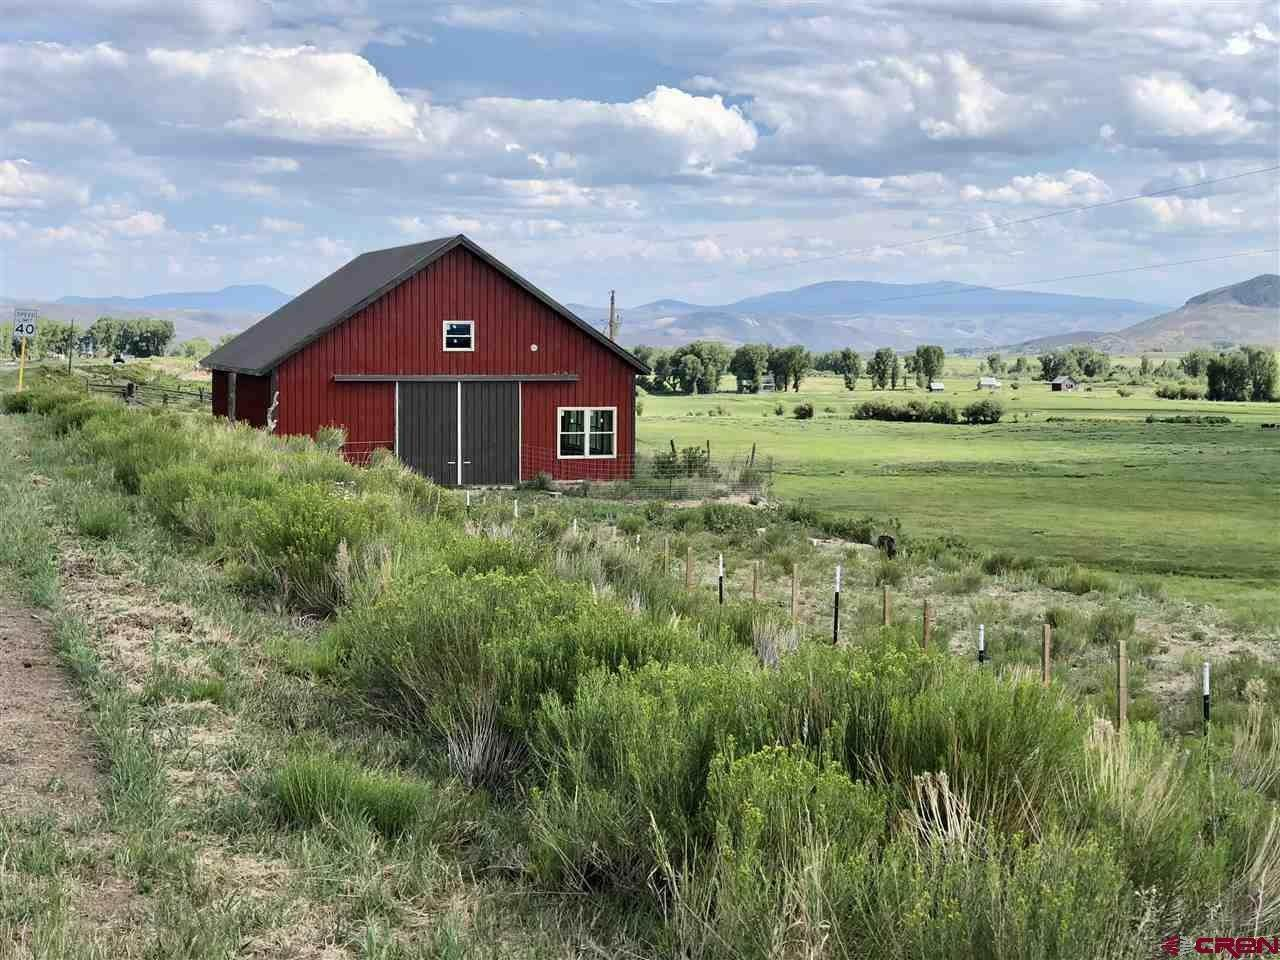 Farm and Ranch Properties for Sale at 5048 County Road 730 Gunnison, Colorado 81230 United States